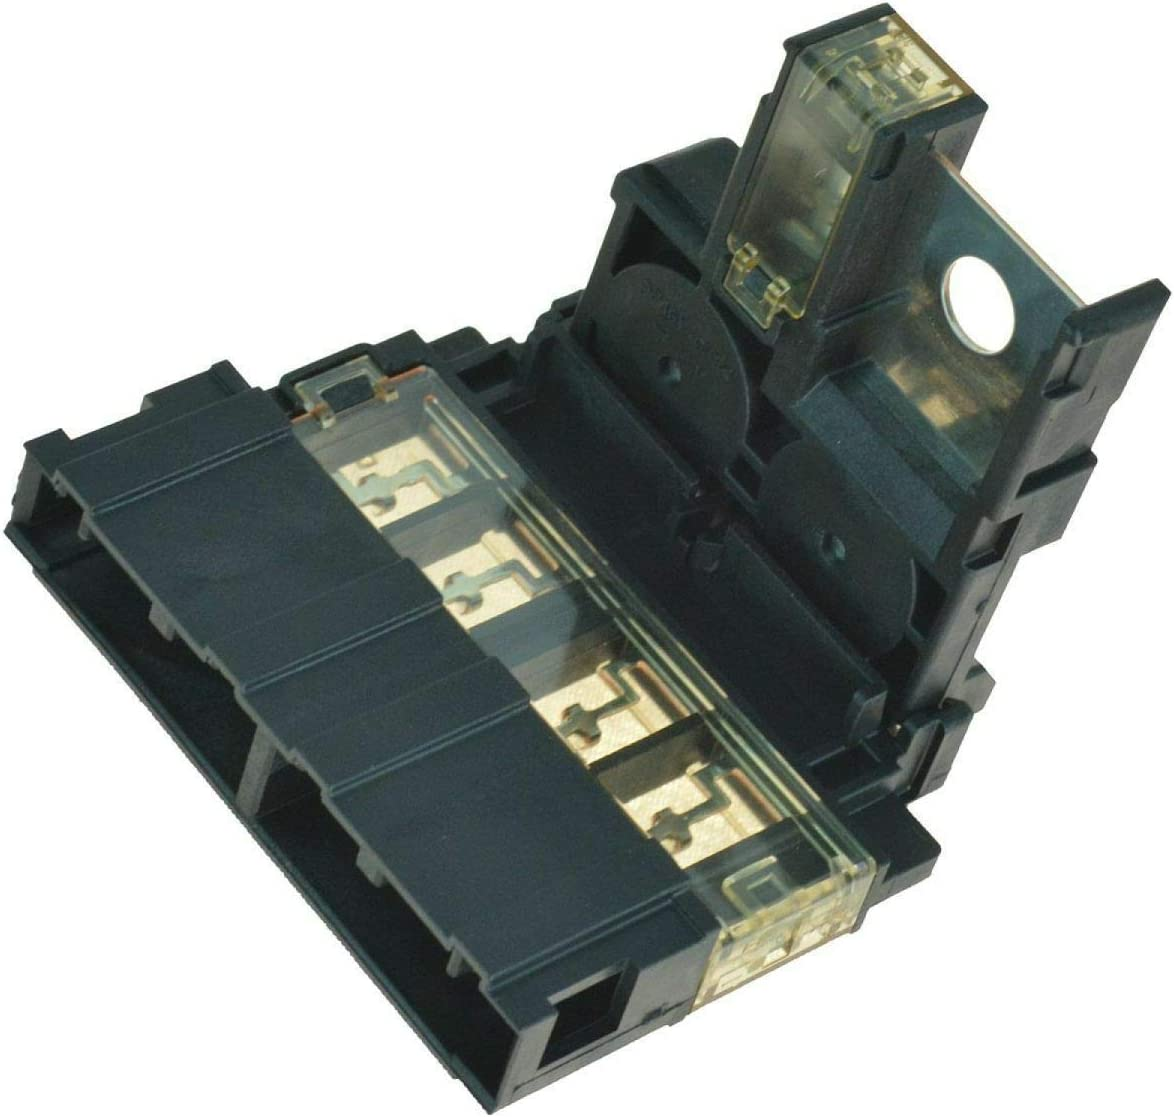 Sawyer Auto Positive Battery Cable Link C Fuse Connector Sale Fusible Sale special price